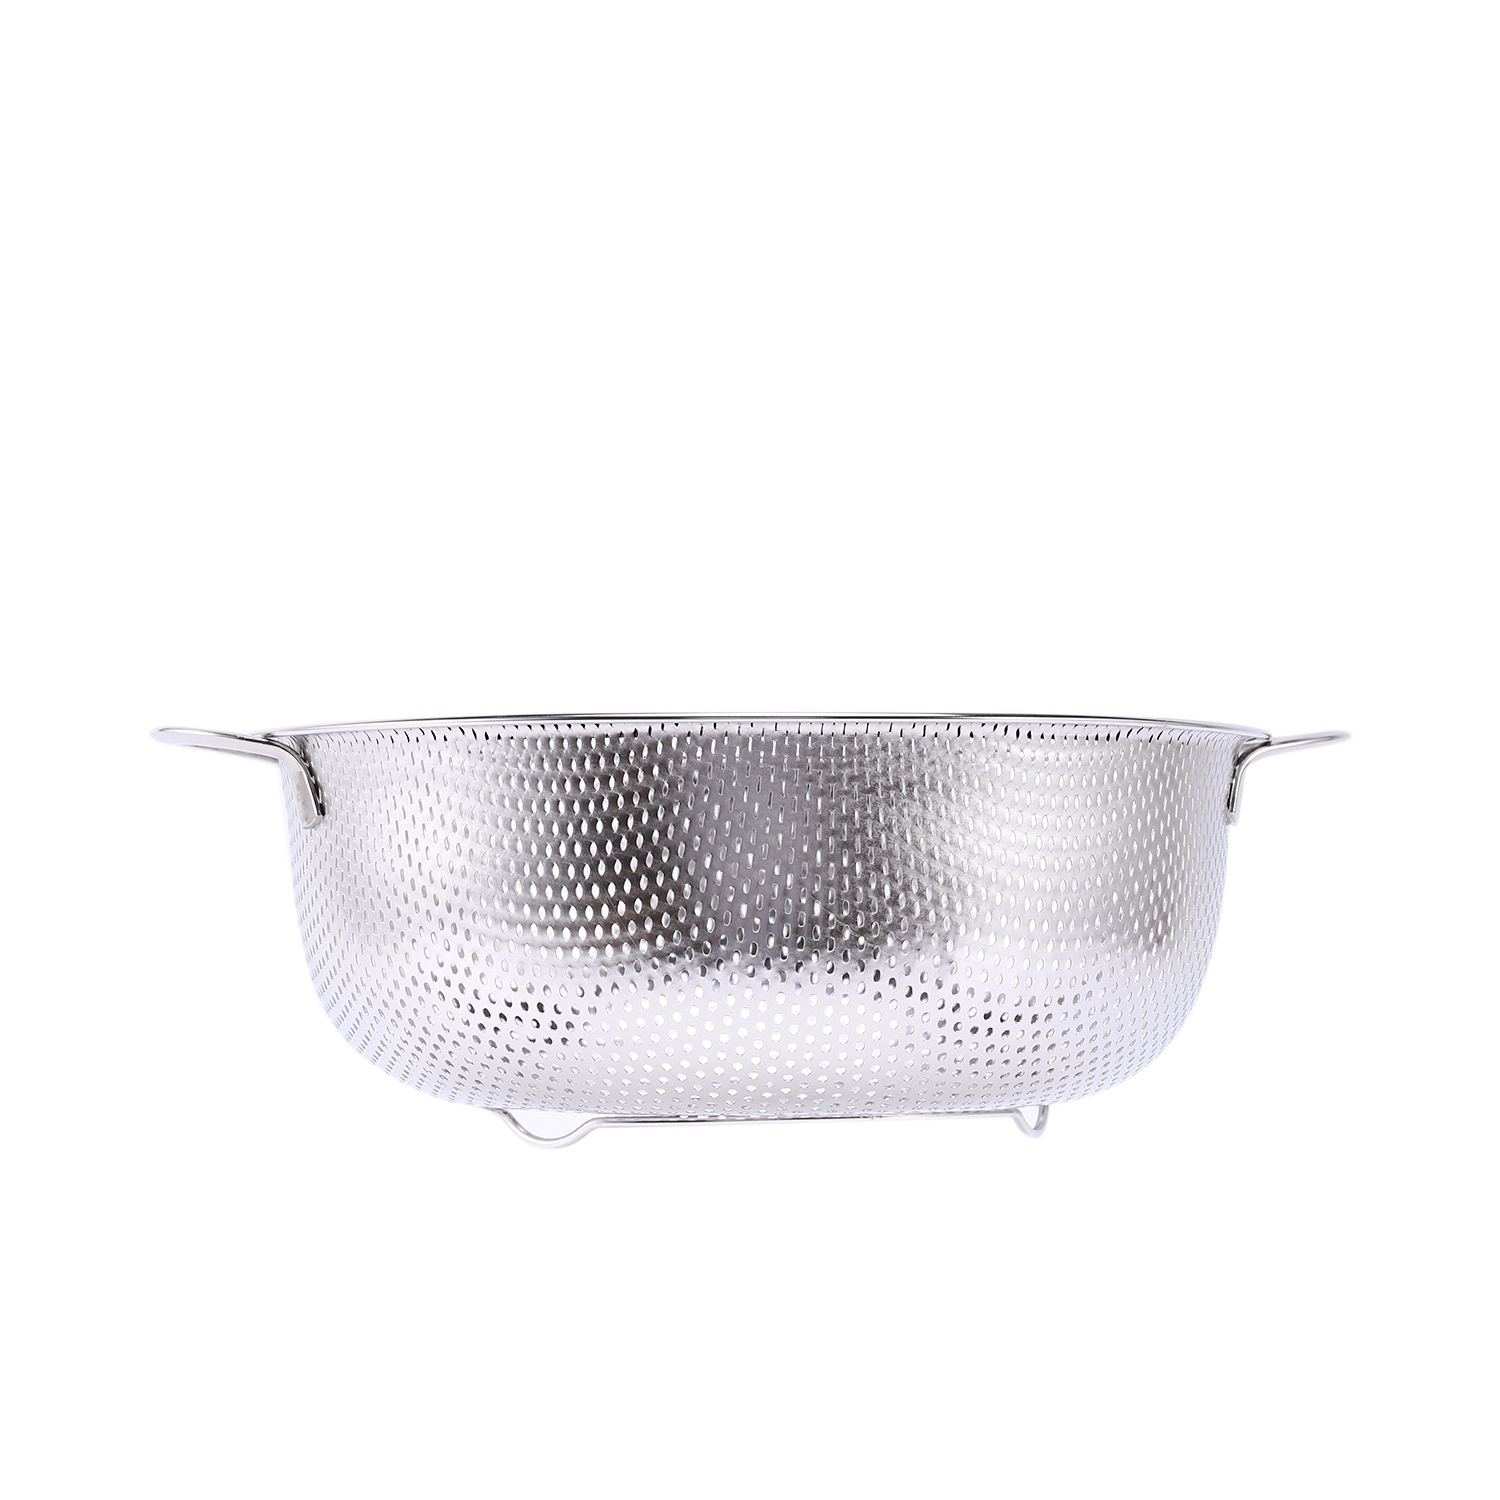 thumbnail 4 - Stainless Steel Colanders With Handle,Colander Perforated Strainer For Kitc D1Z4